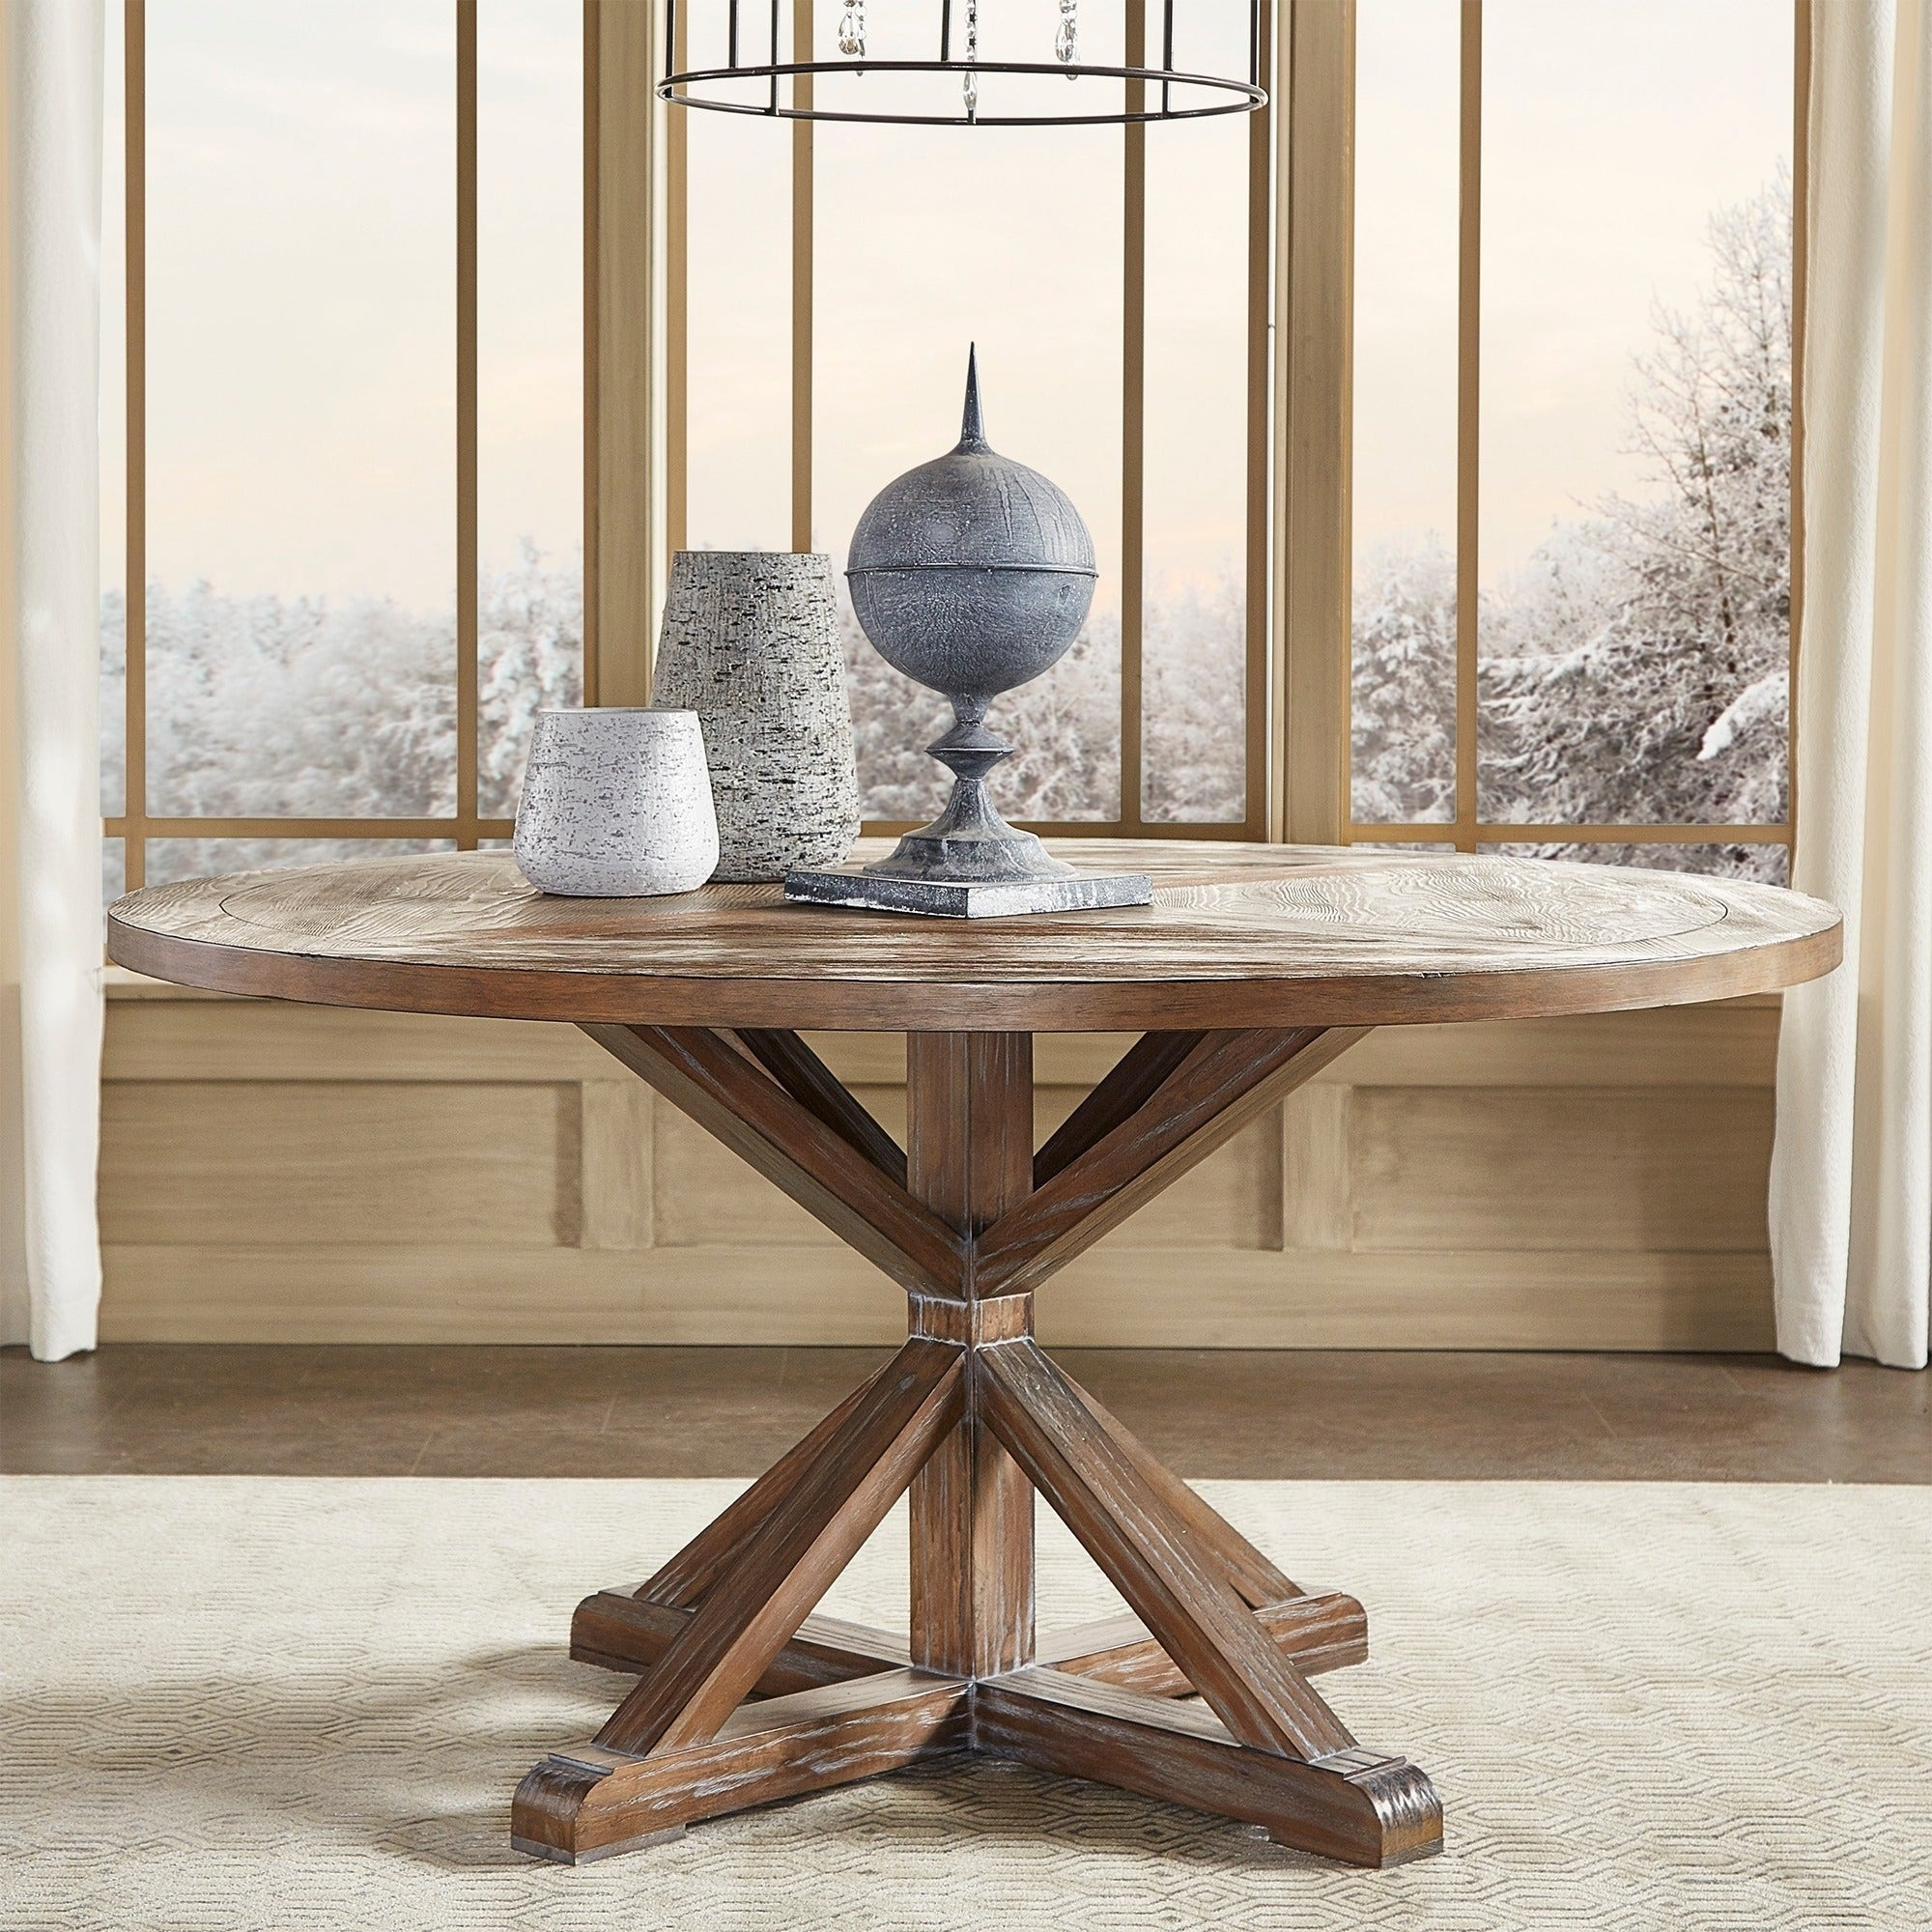 Benchwright Rustic X Base Round Pine Wood Dining Table By Inspire Q Artisan Sale